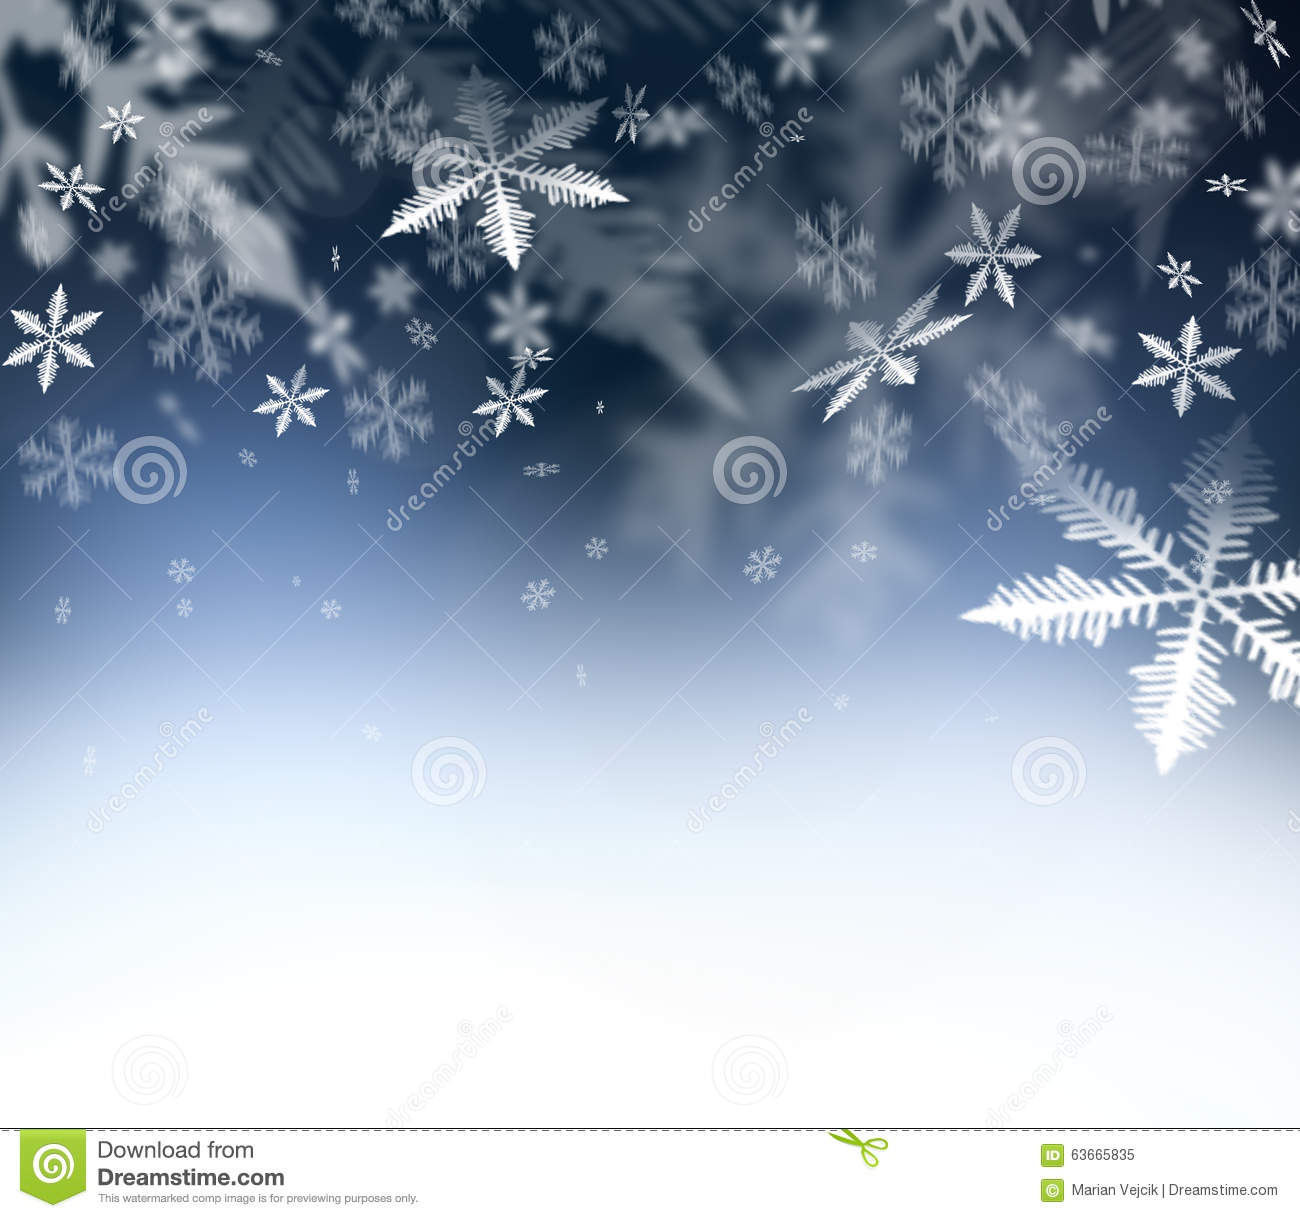 christmas abstract background falling snowflakes on blue abstract sky free space for your christmas and new year wishes felicitation